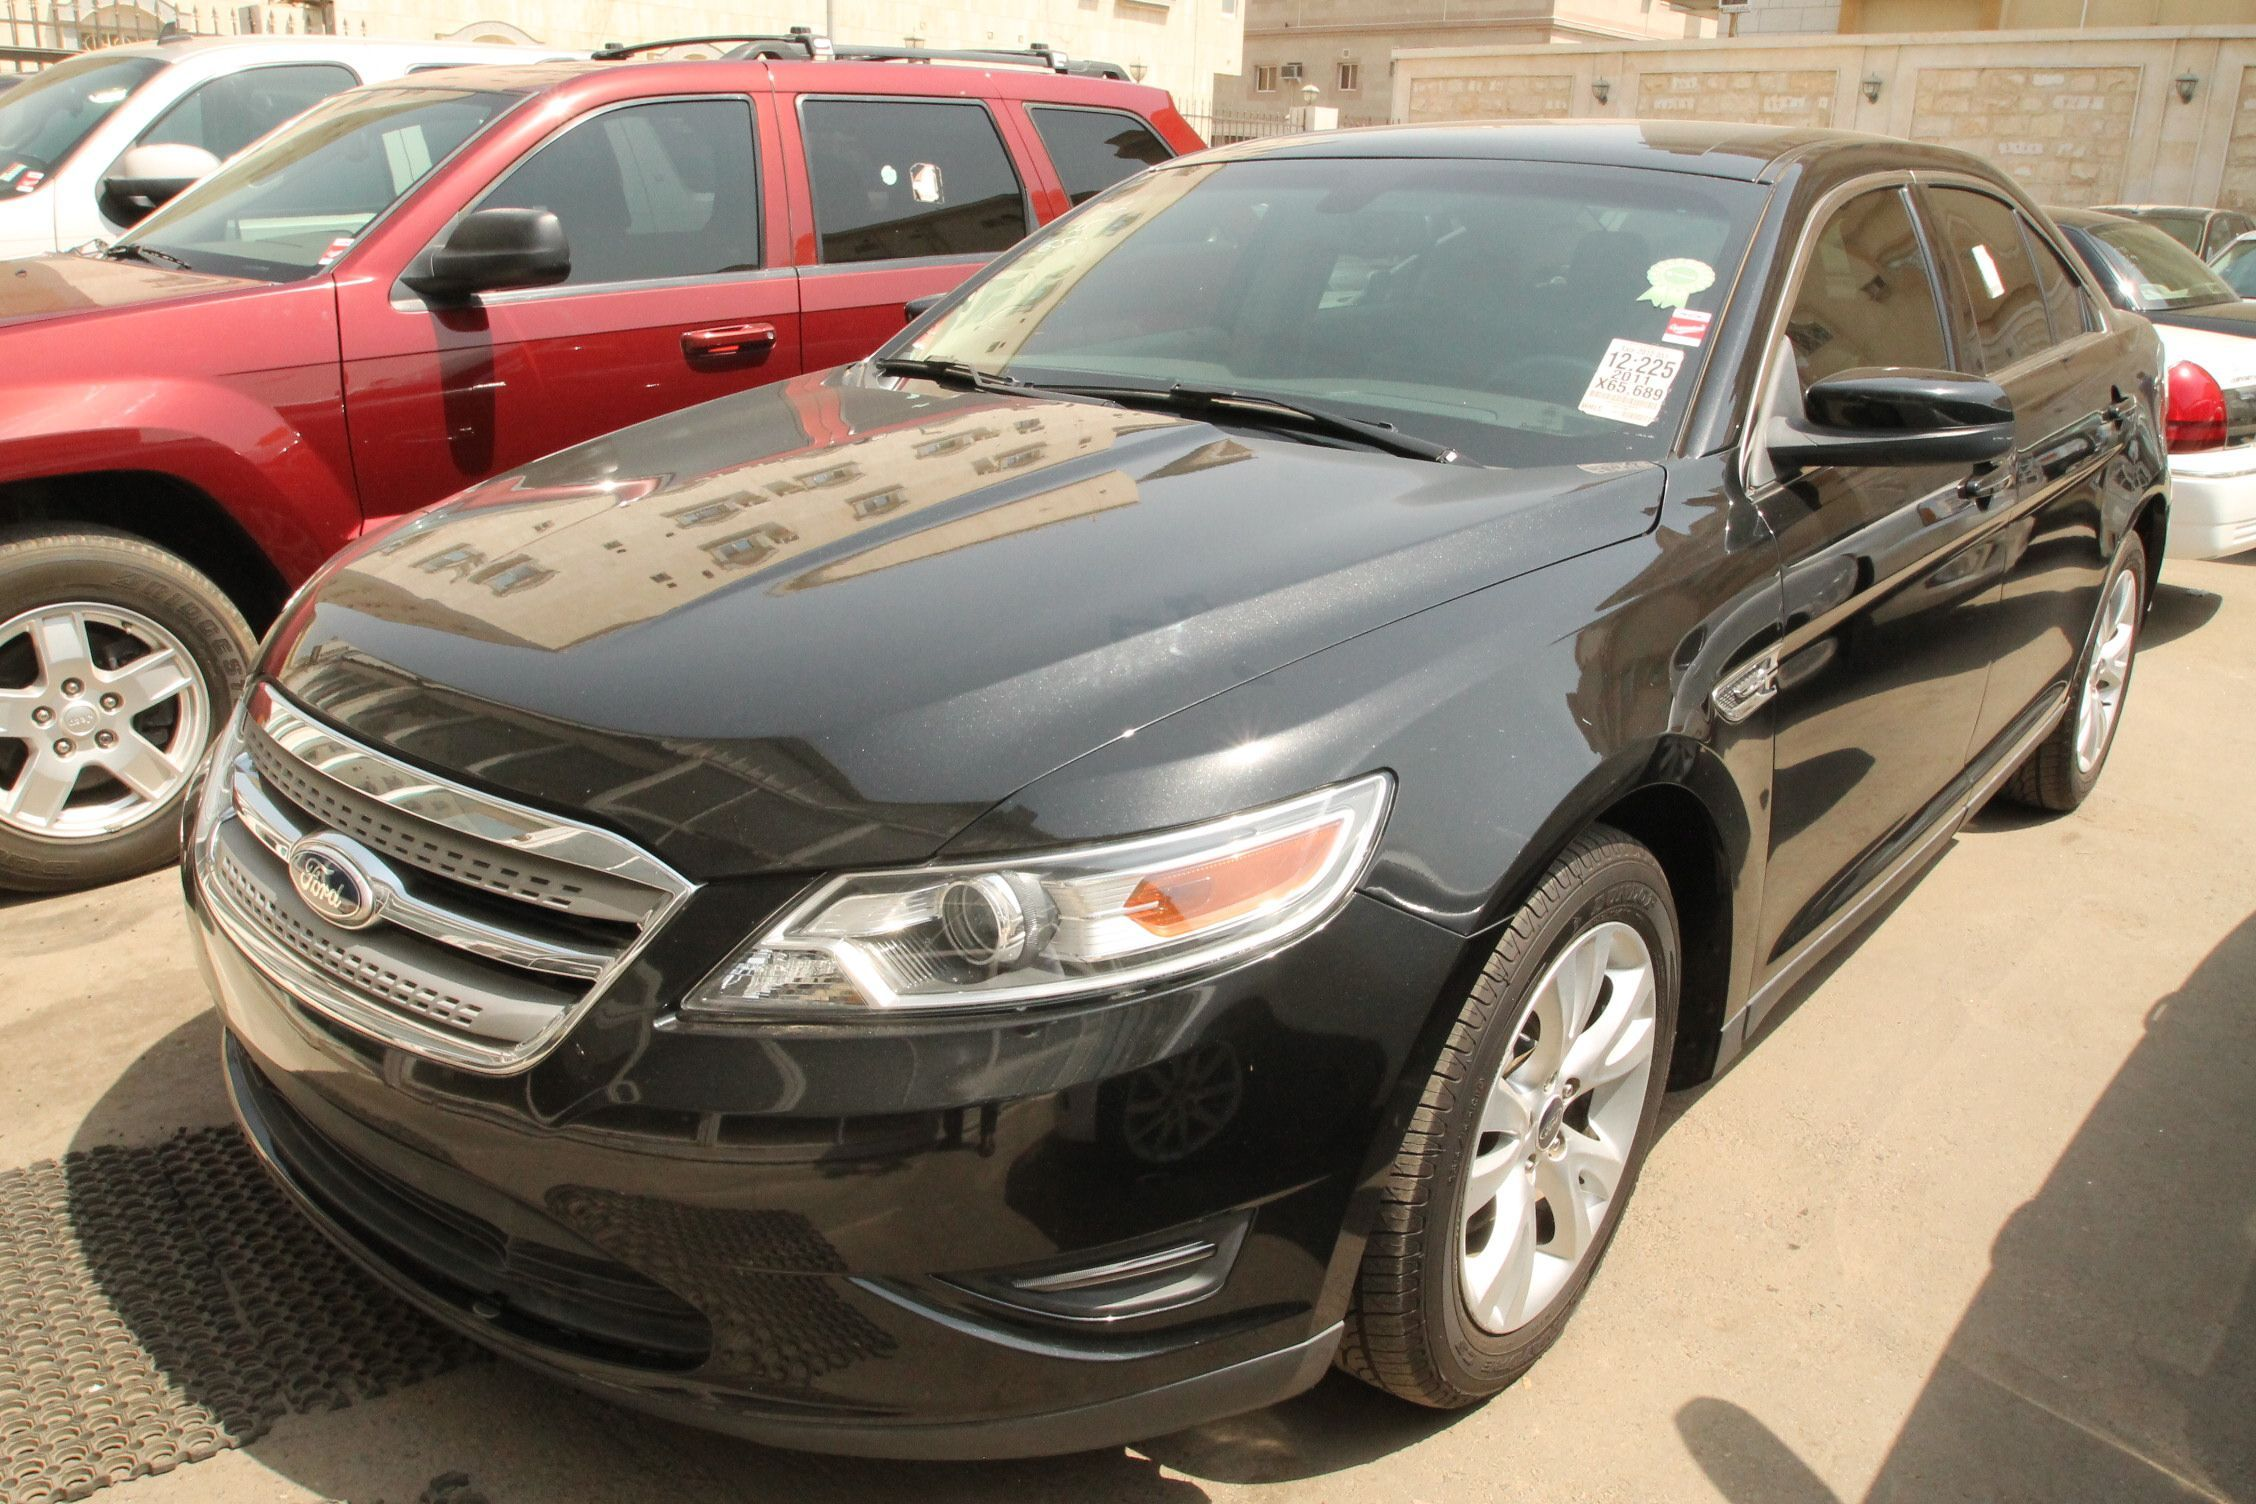 Ford Taurus For Sale In Jeddah Cars For Sale Taurus New And Used Cars